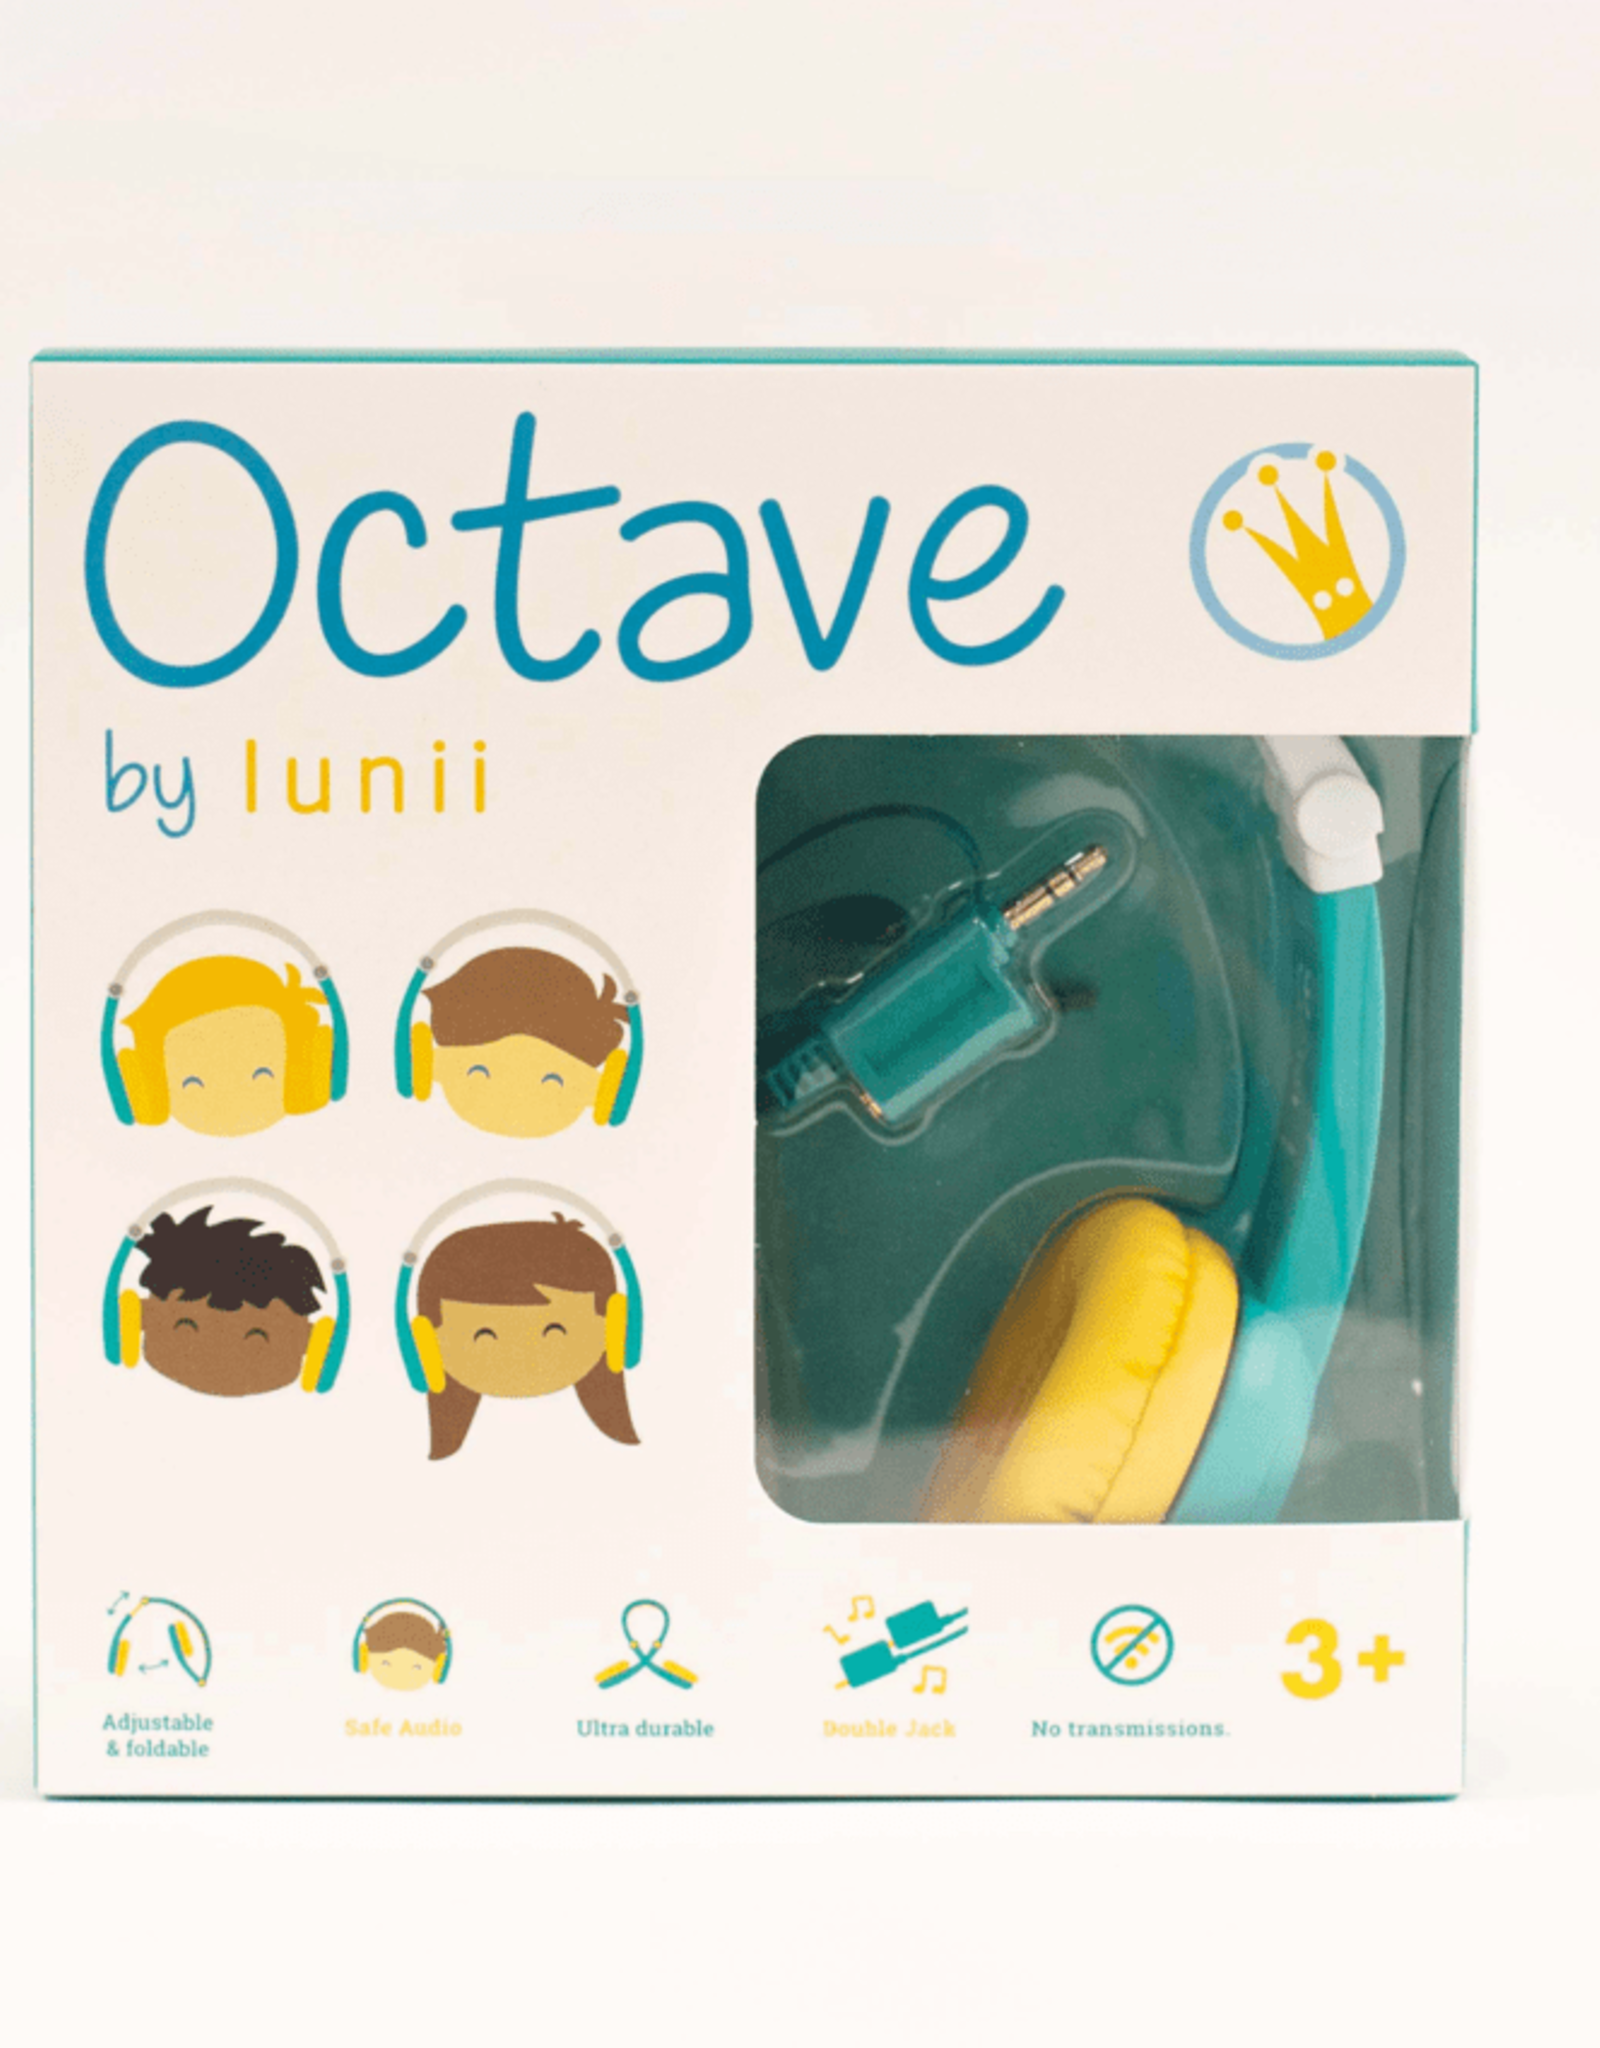 Octave, the audio headset